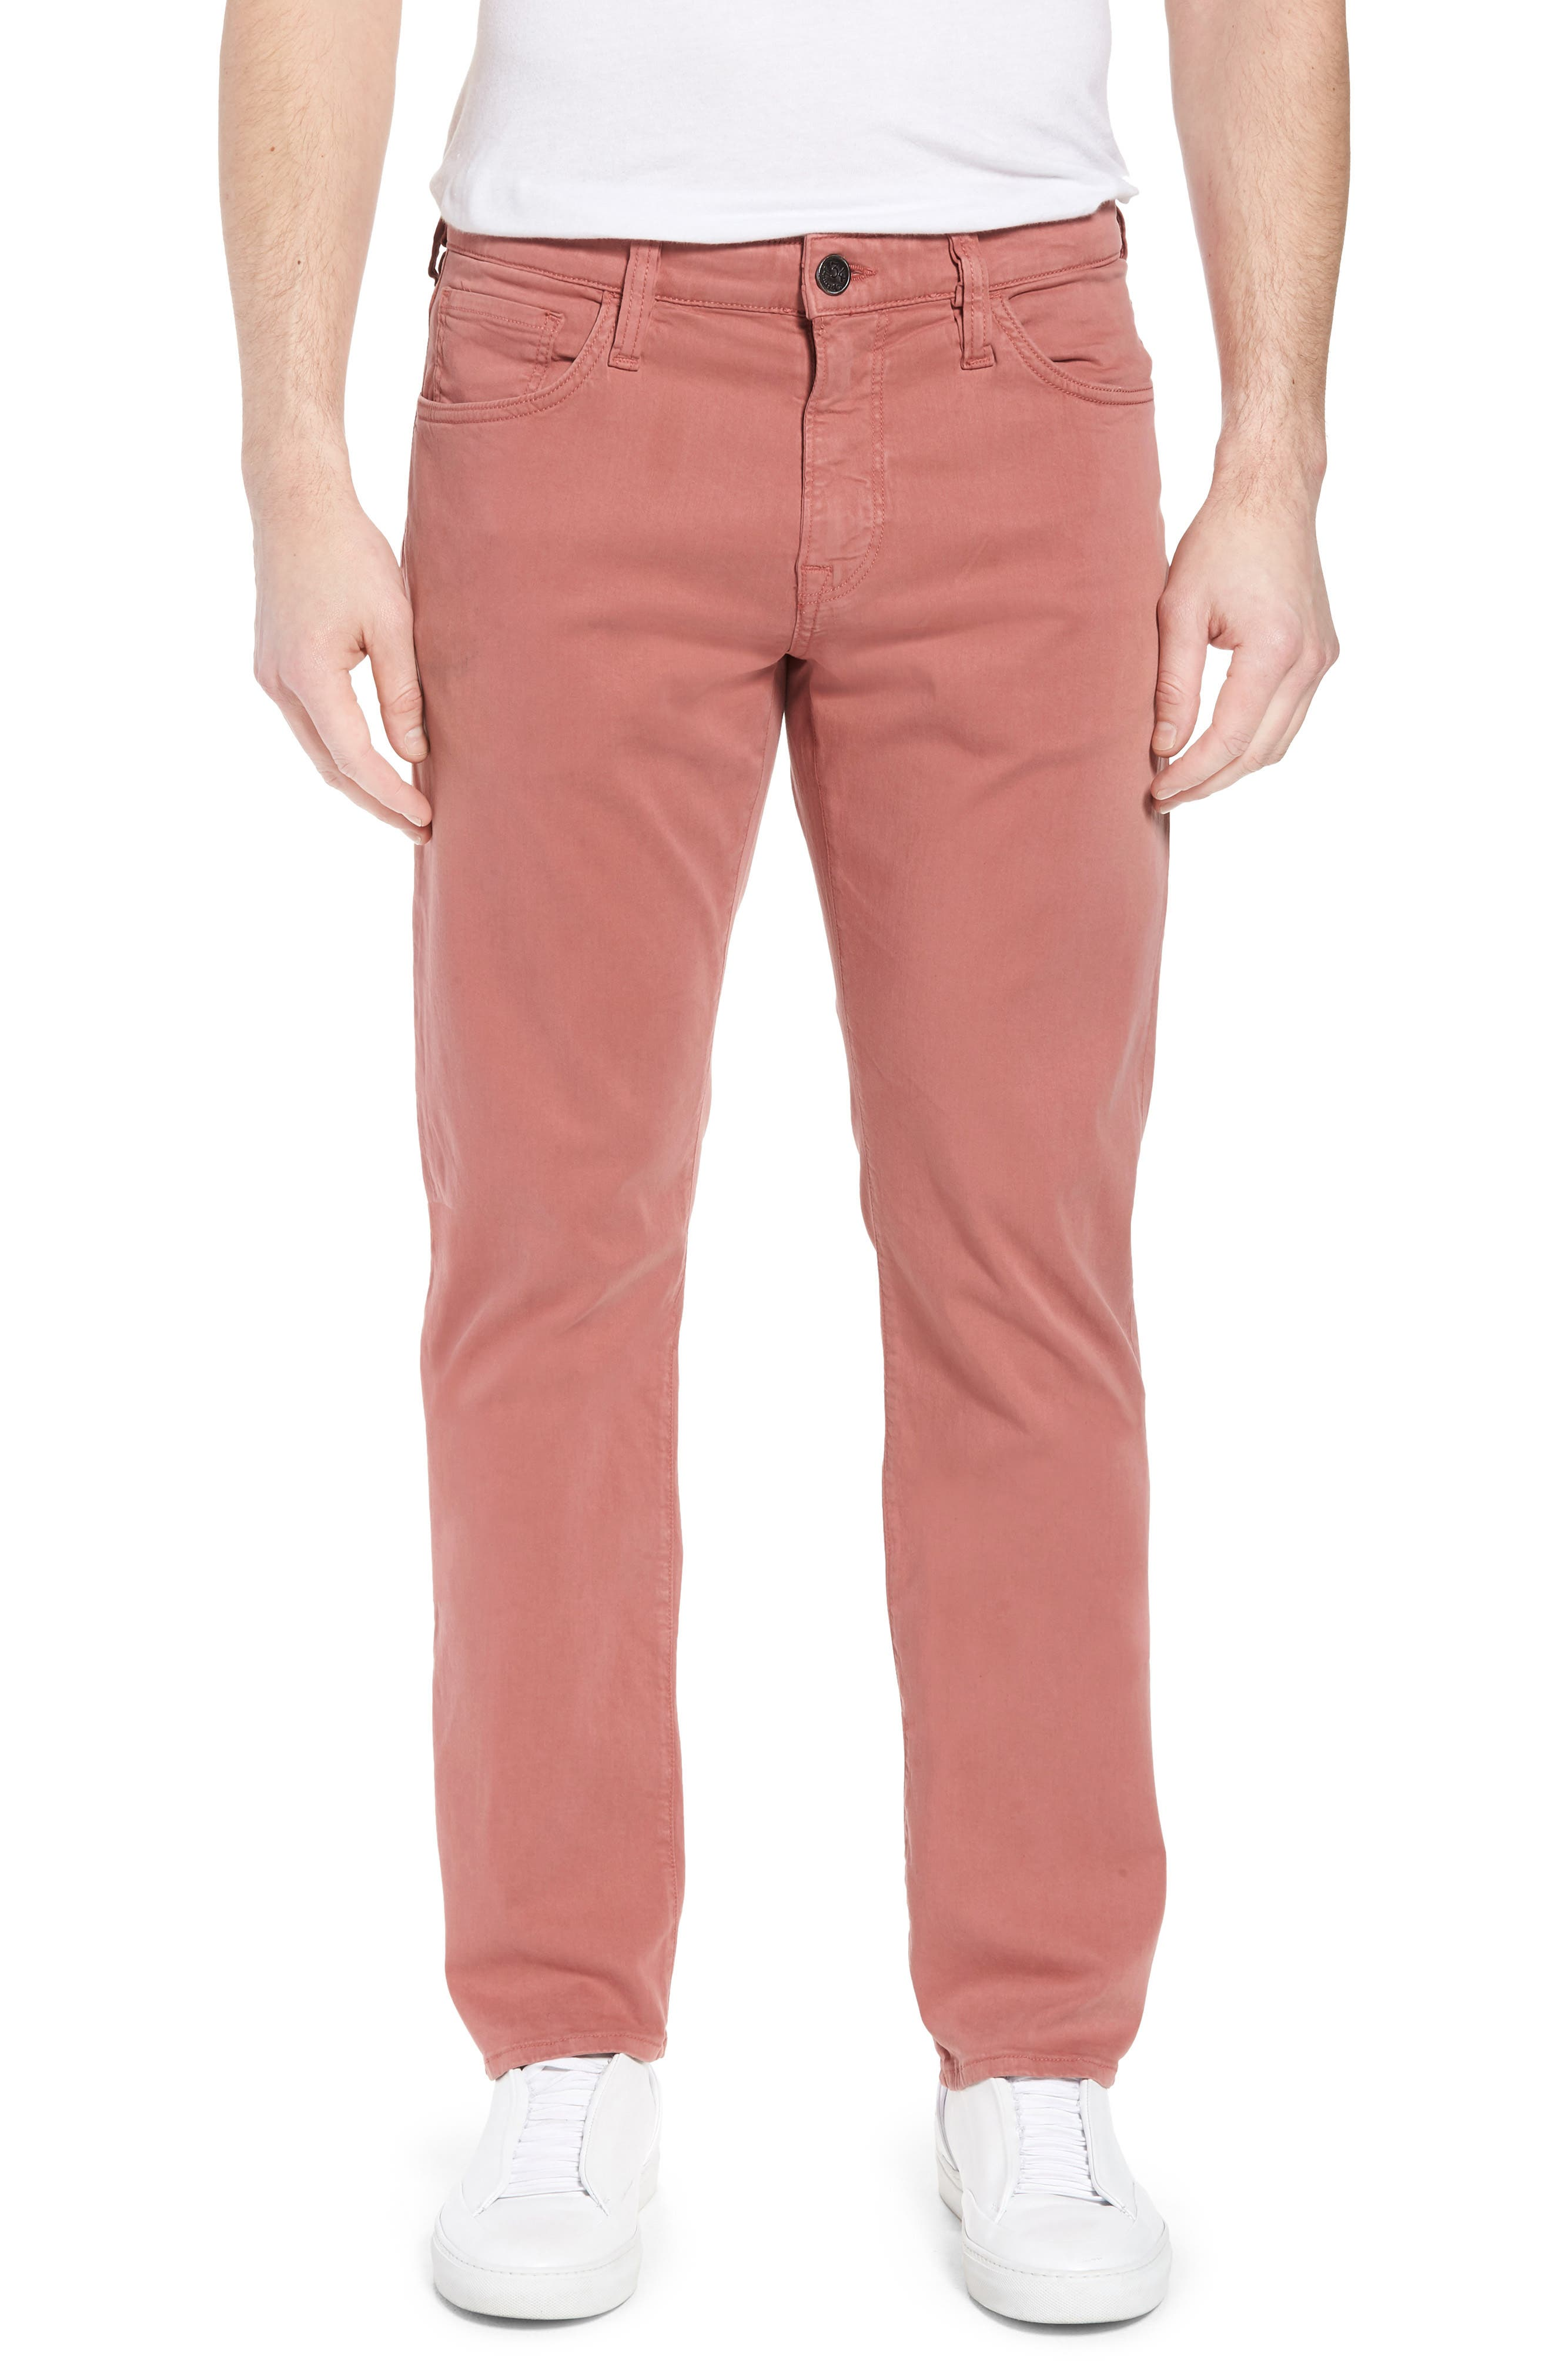 Courage Straight Leg Twill Pants,                             Main thumbnail 1, color,                             Brick Twill